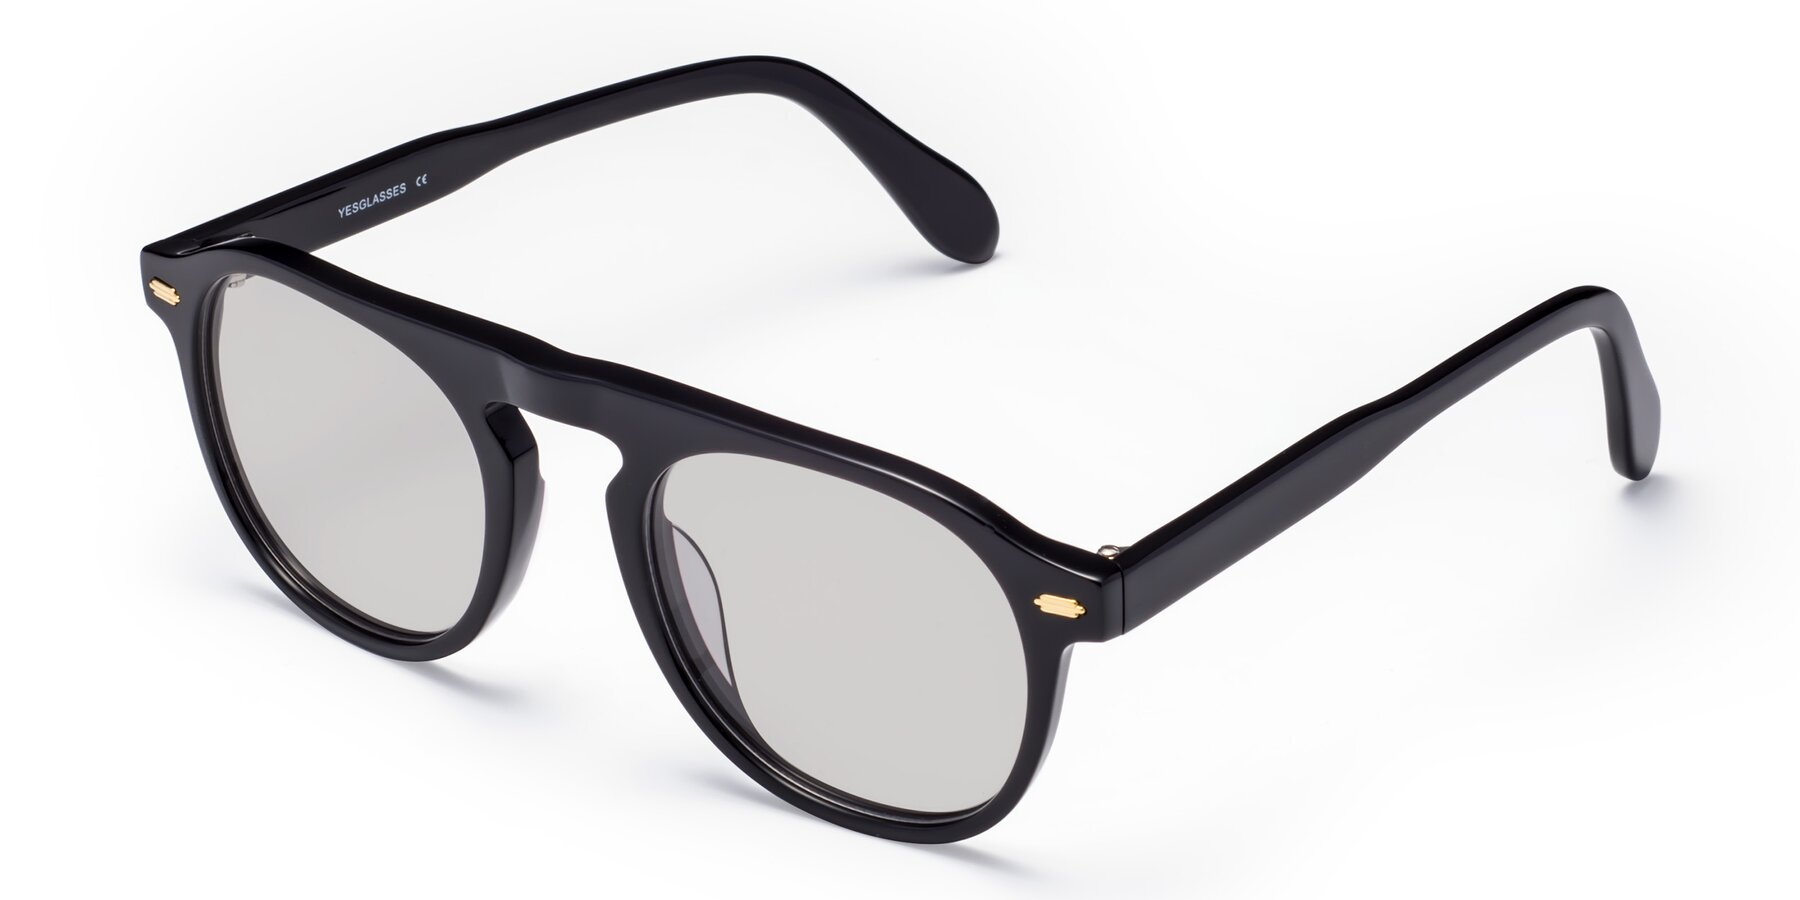 Angle of Mufasa in Black with Light Gray Tinted Lenses